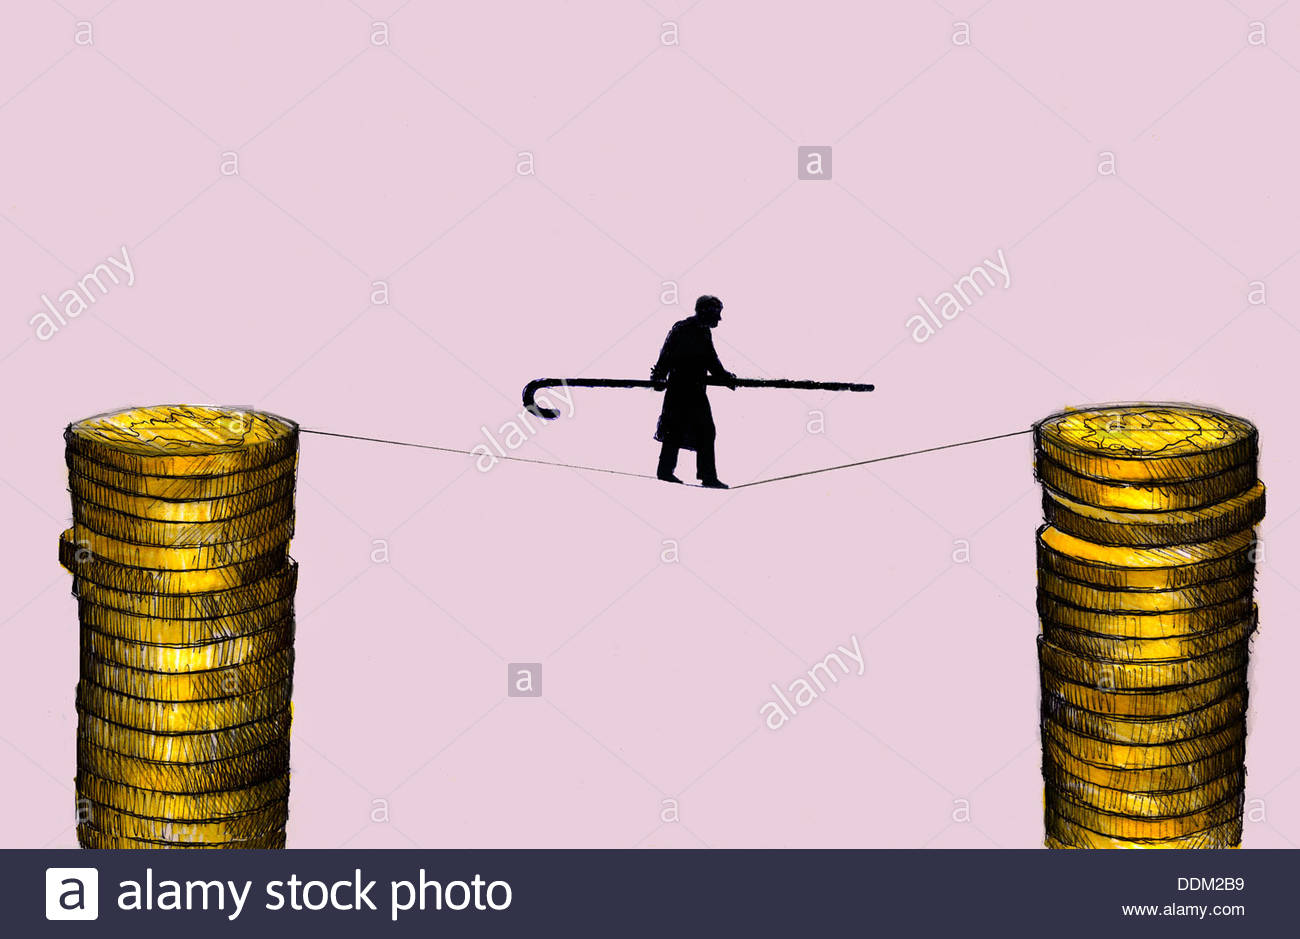 Elderly man with cane walking on tightrope supported by stacks of coins - Stock Image